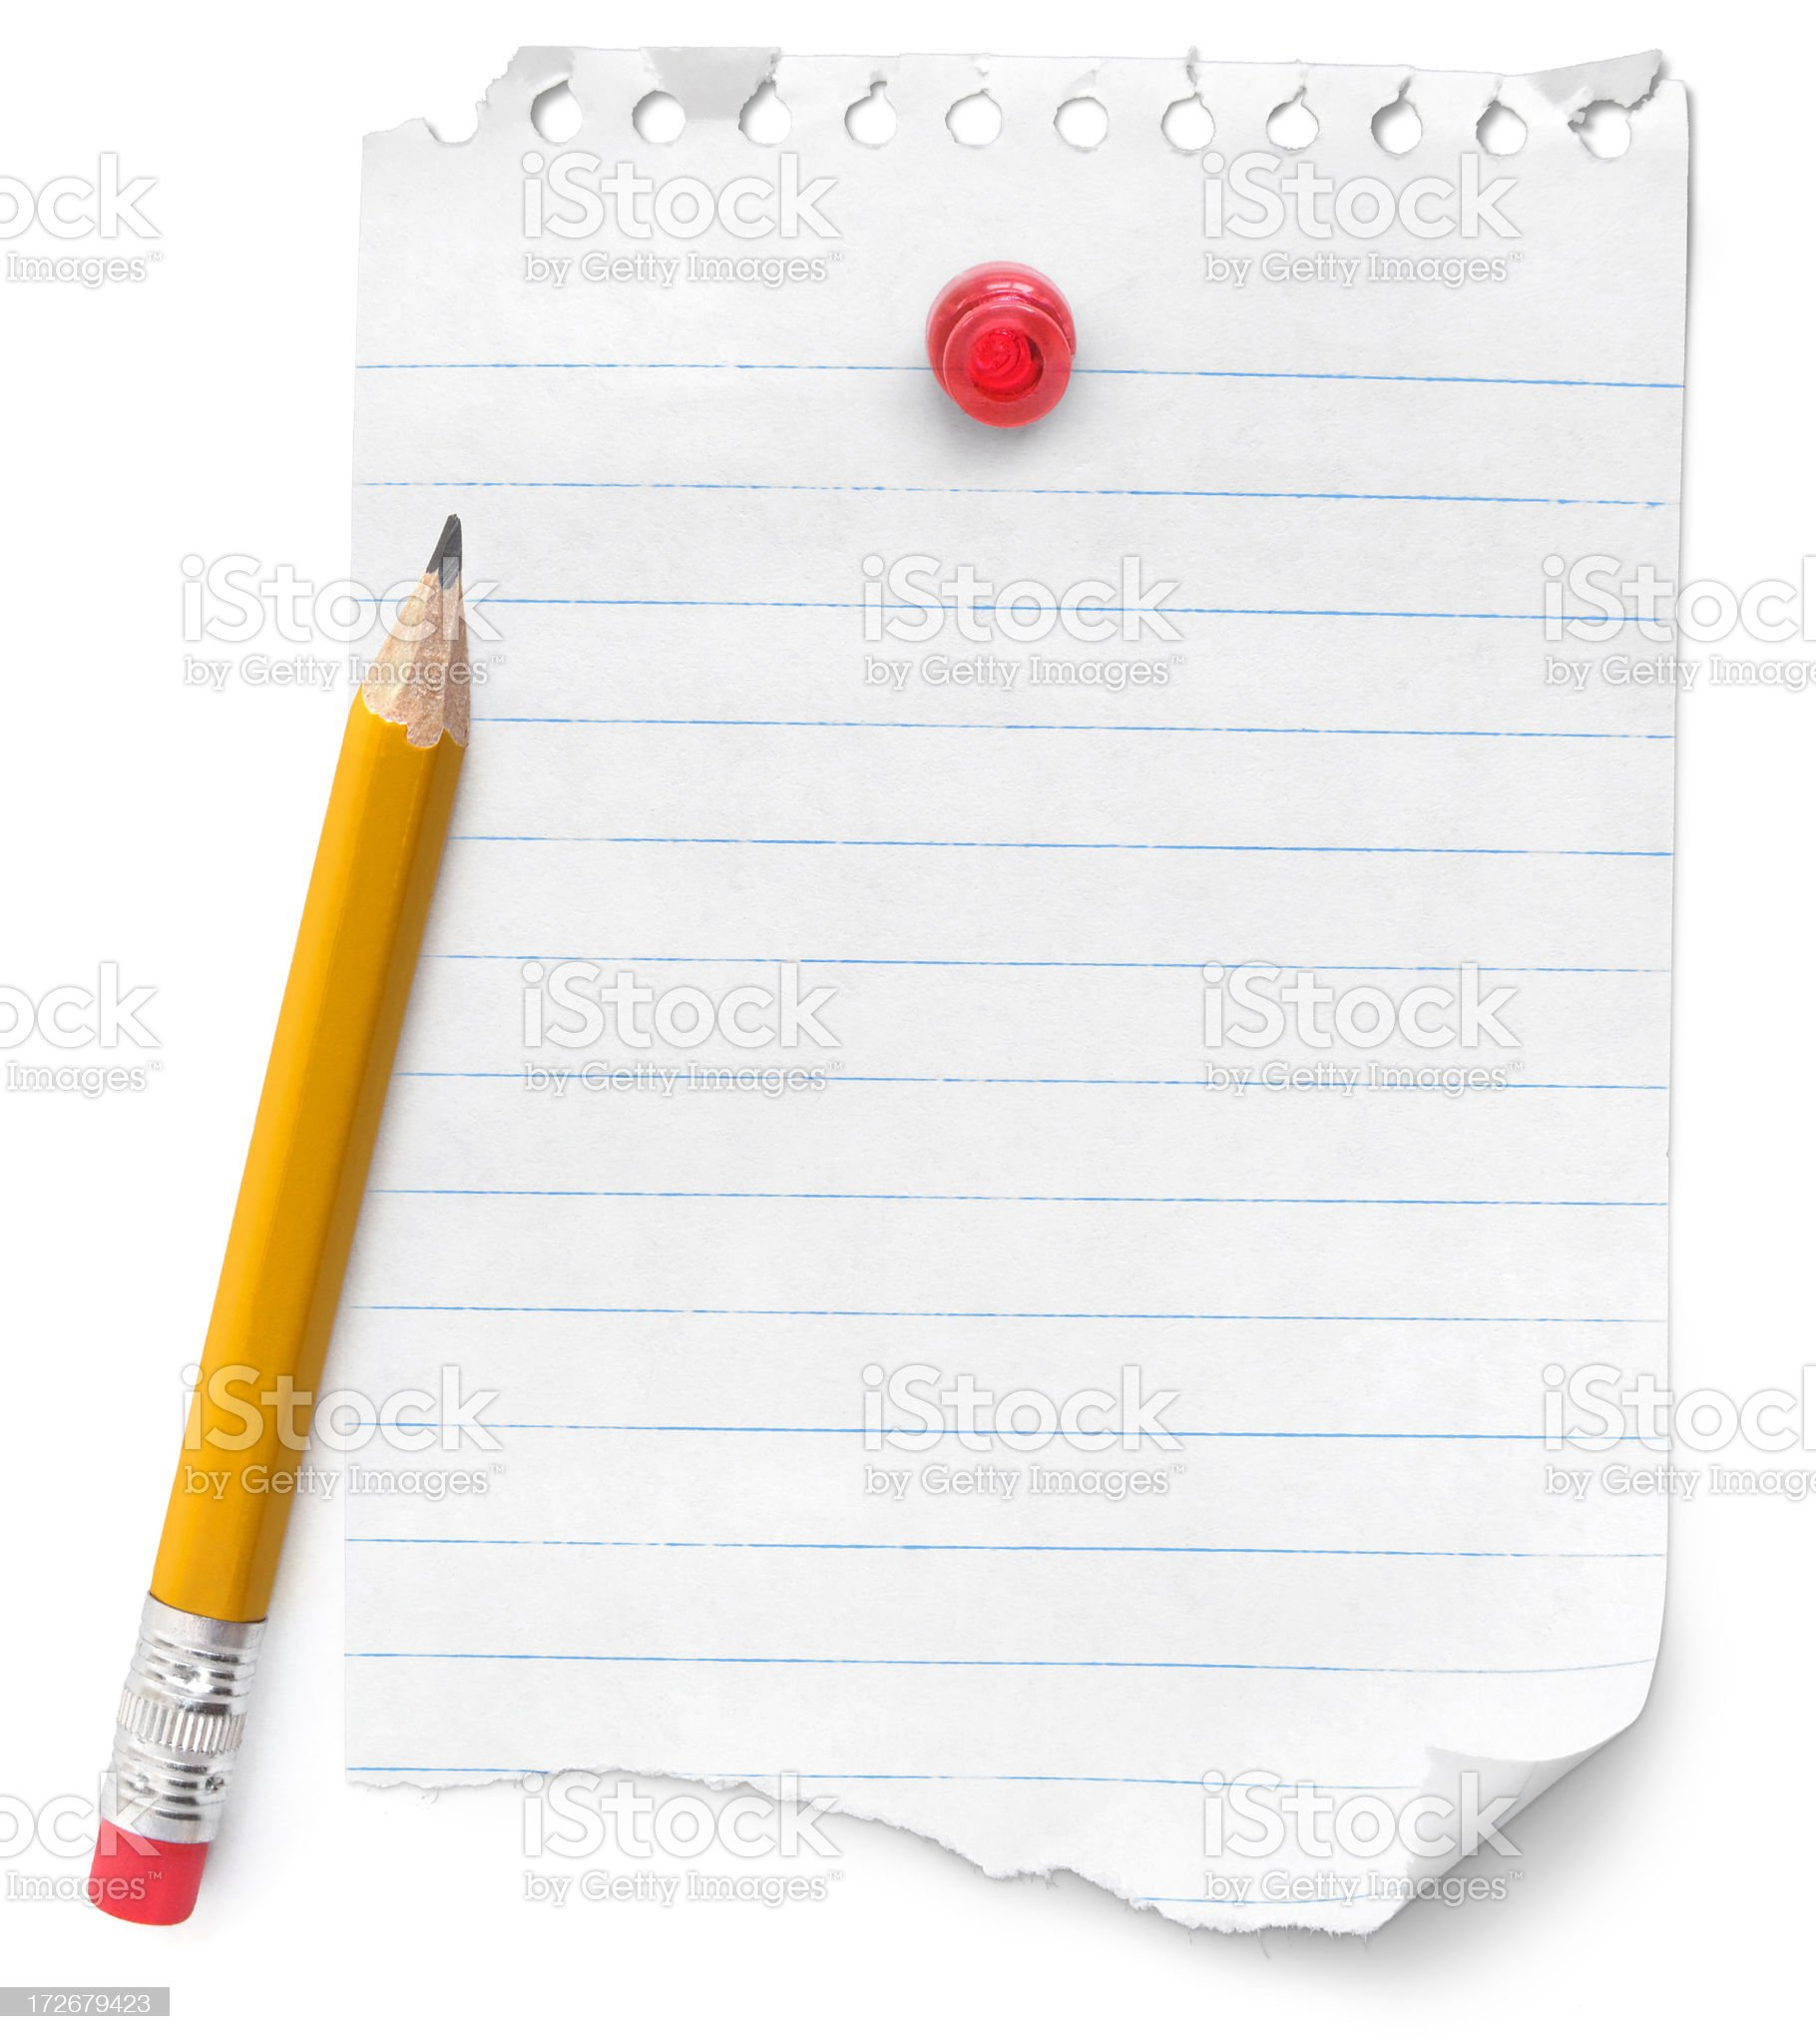 Blank Note and Pencil royalty-free stock photo